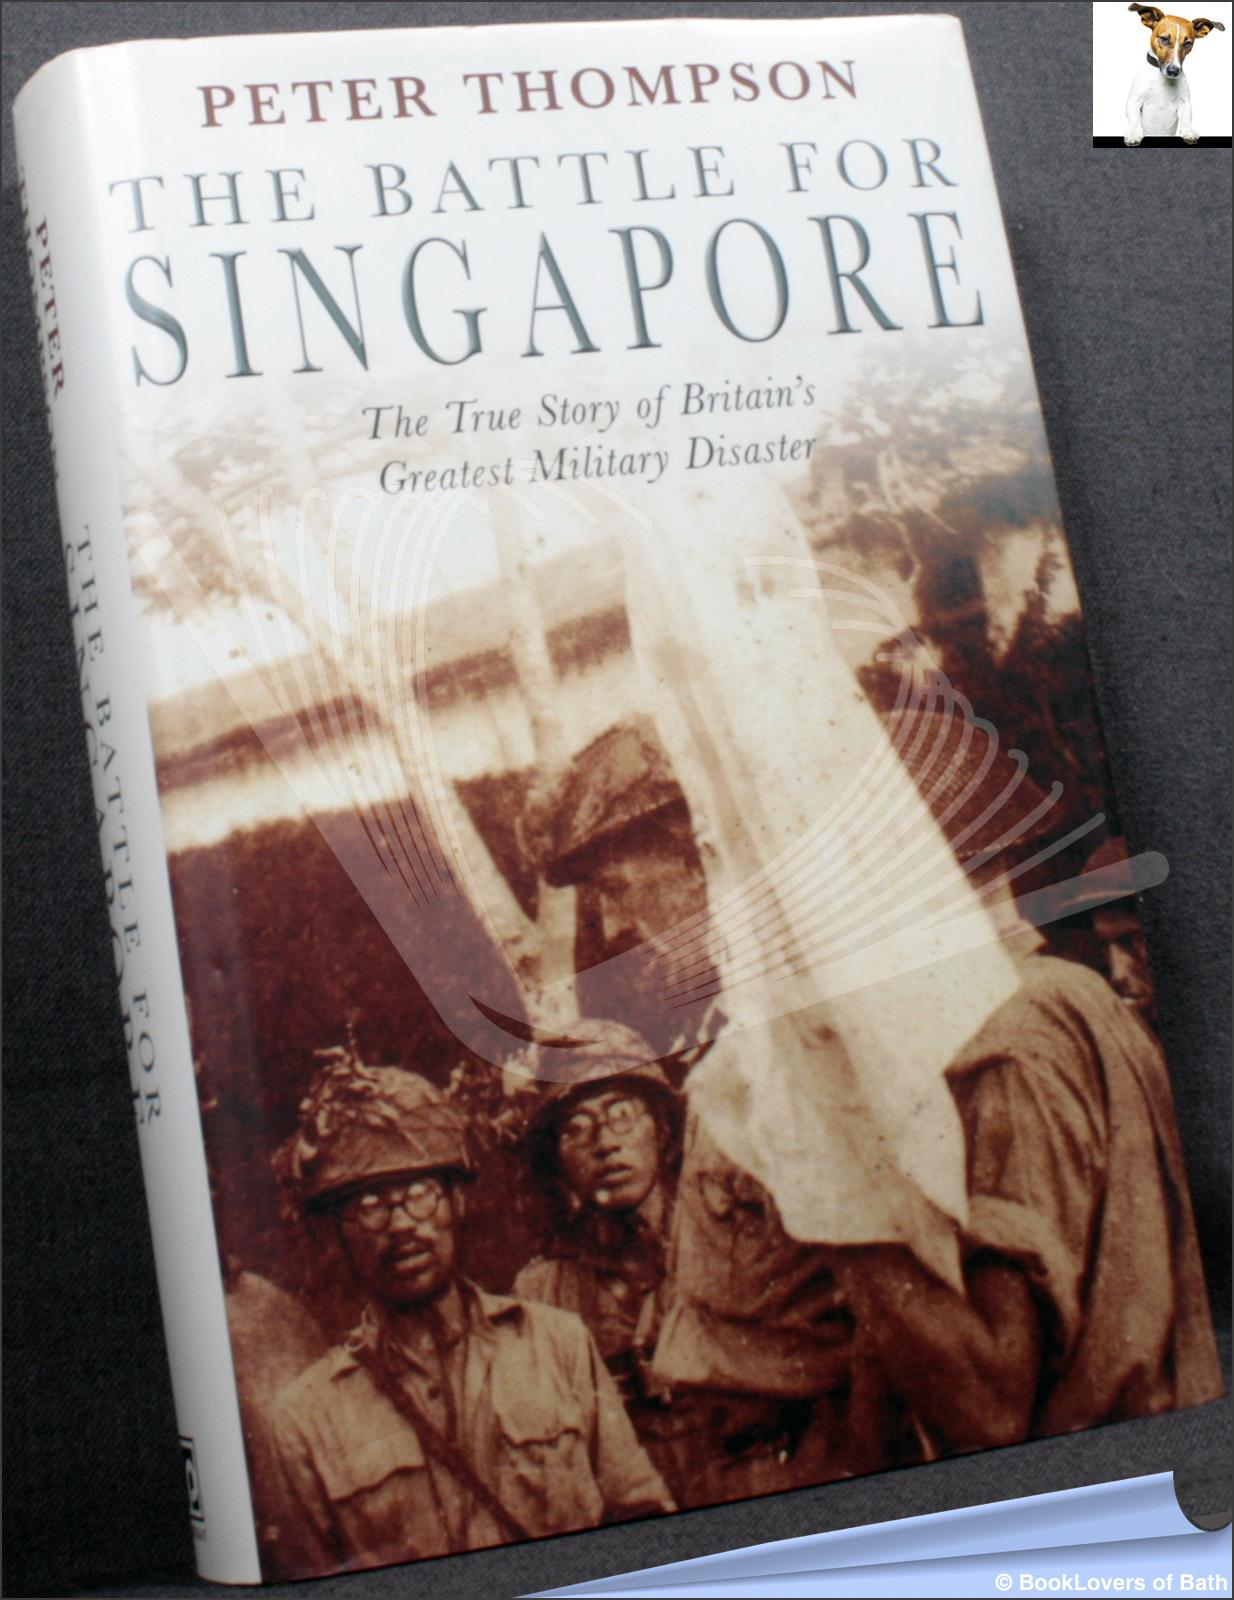 The Battle for Singapore: The True Story of Britain's Greatest Military Disaster - Peter Thompson